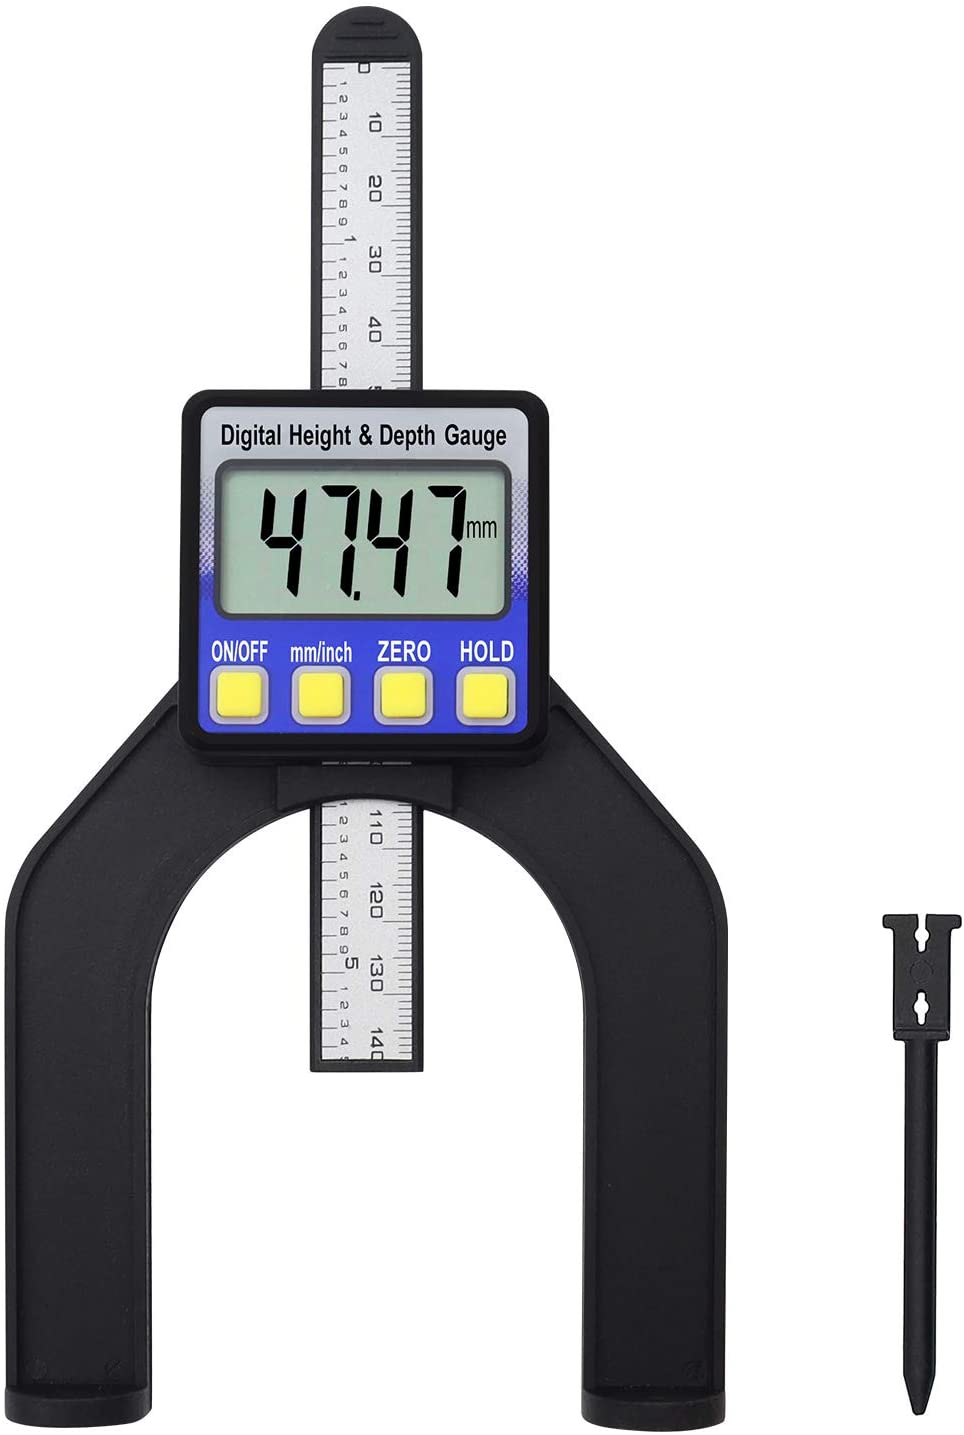 Digital Height and Depth Guage Magnetic Horizontal Vertical Measuring Tool w/Detachable Plunger Measures from 0 to 3 1/8